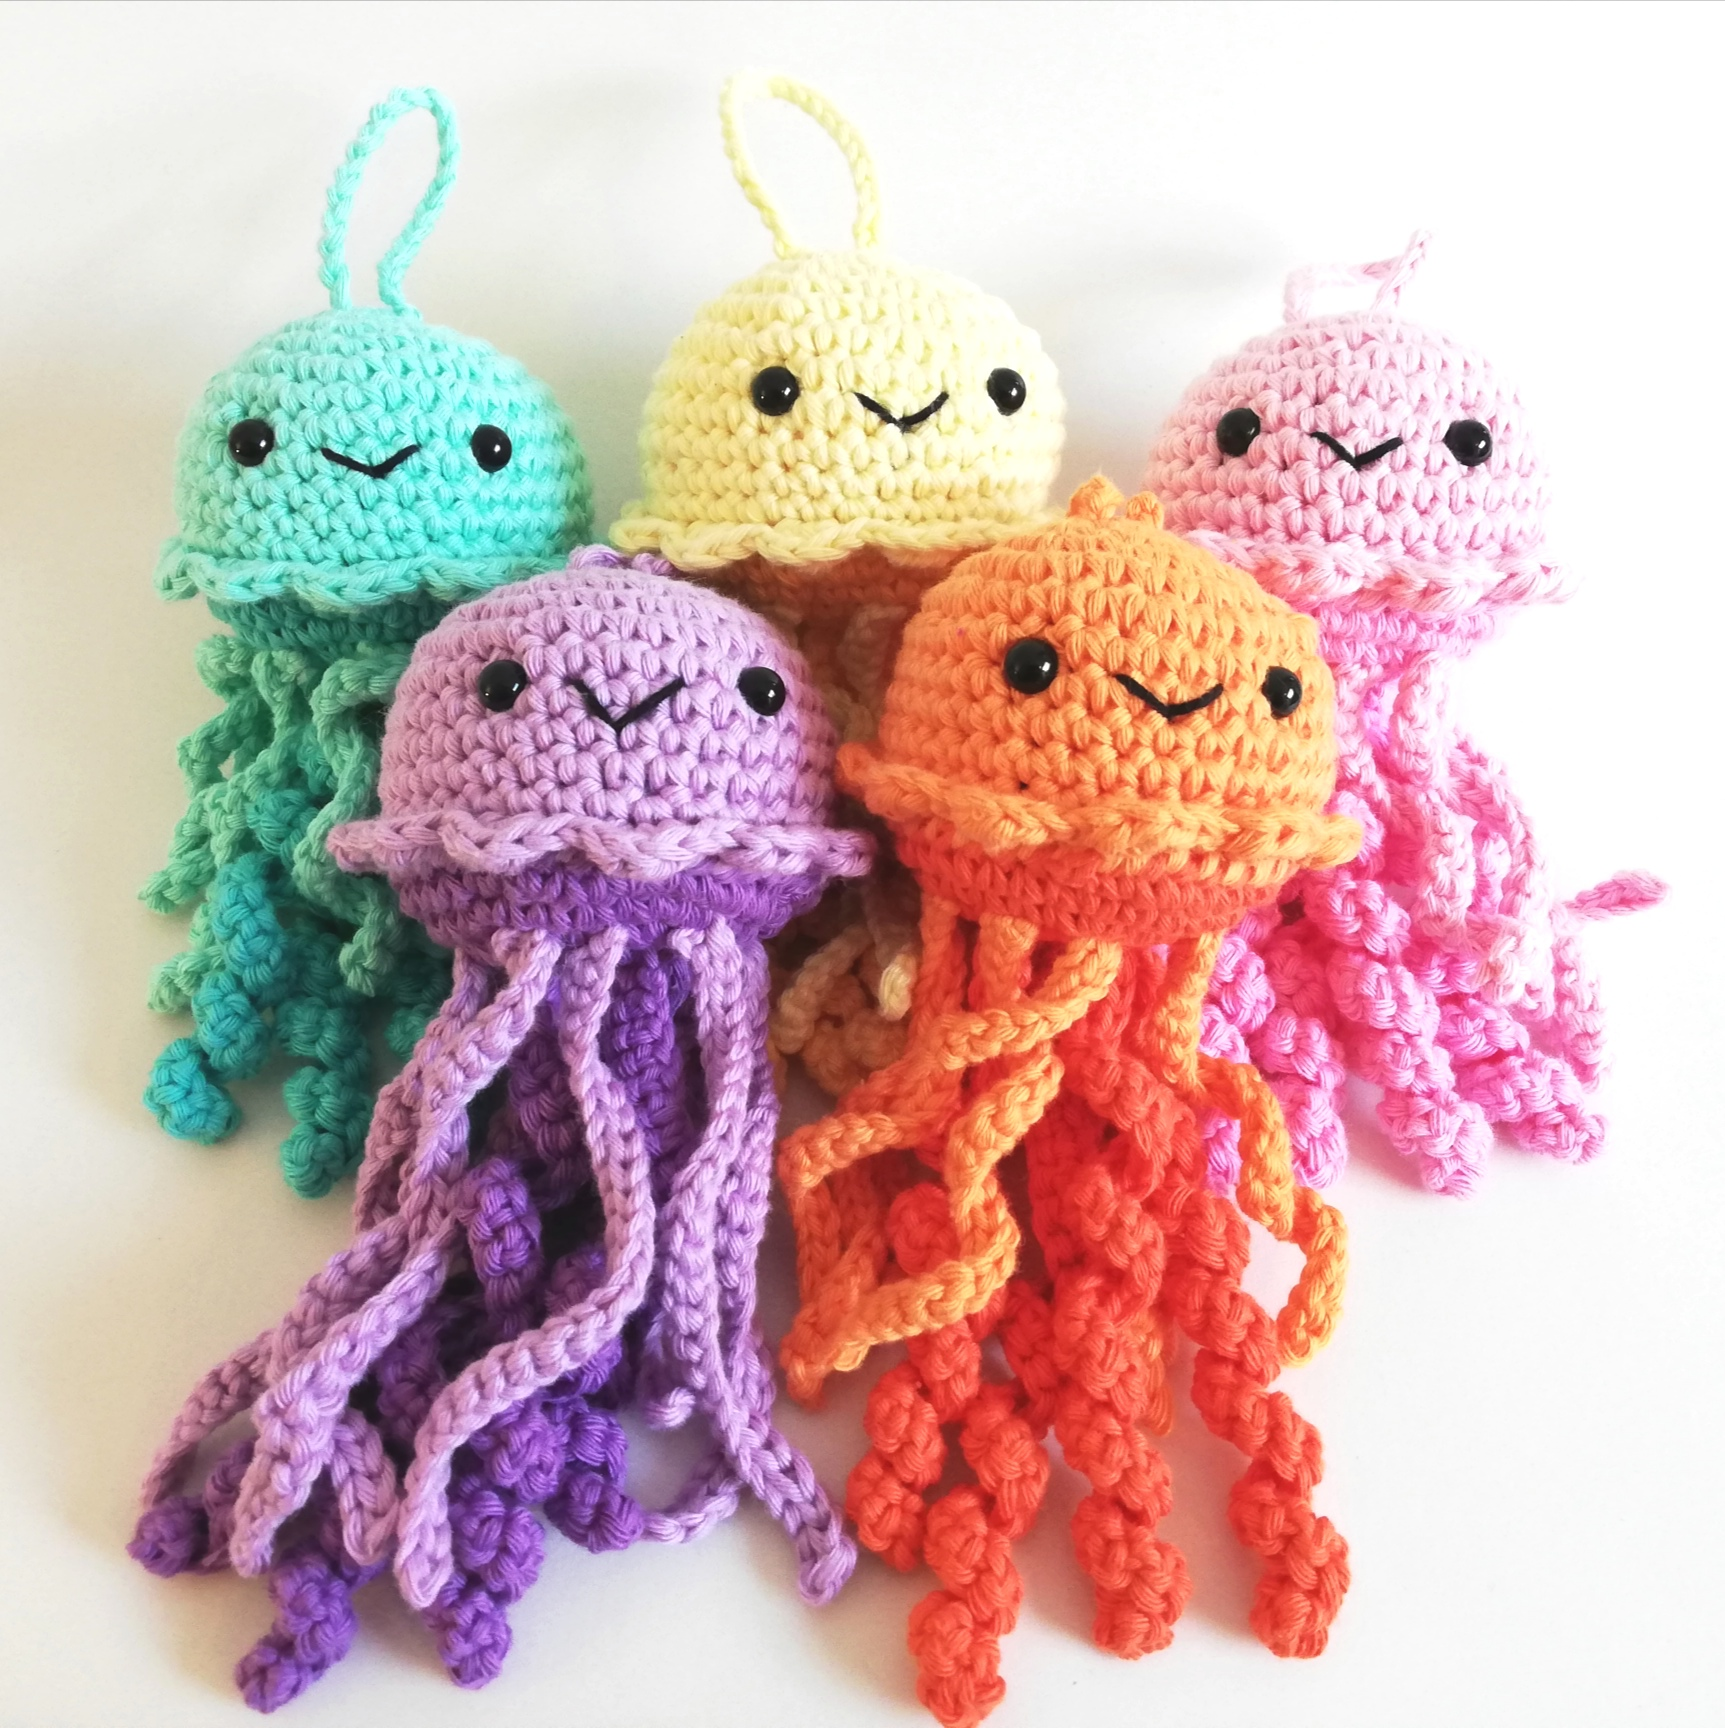 9 Adorable Octopus Crochet Patterns Your Kids Will Love! | 1728x1725